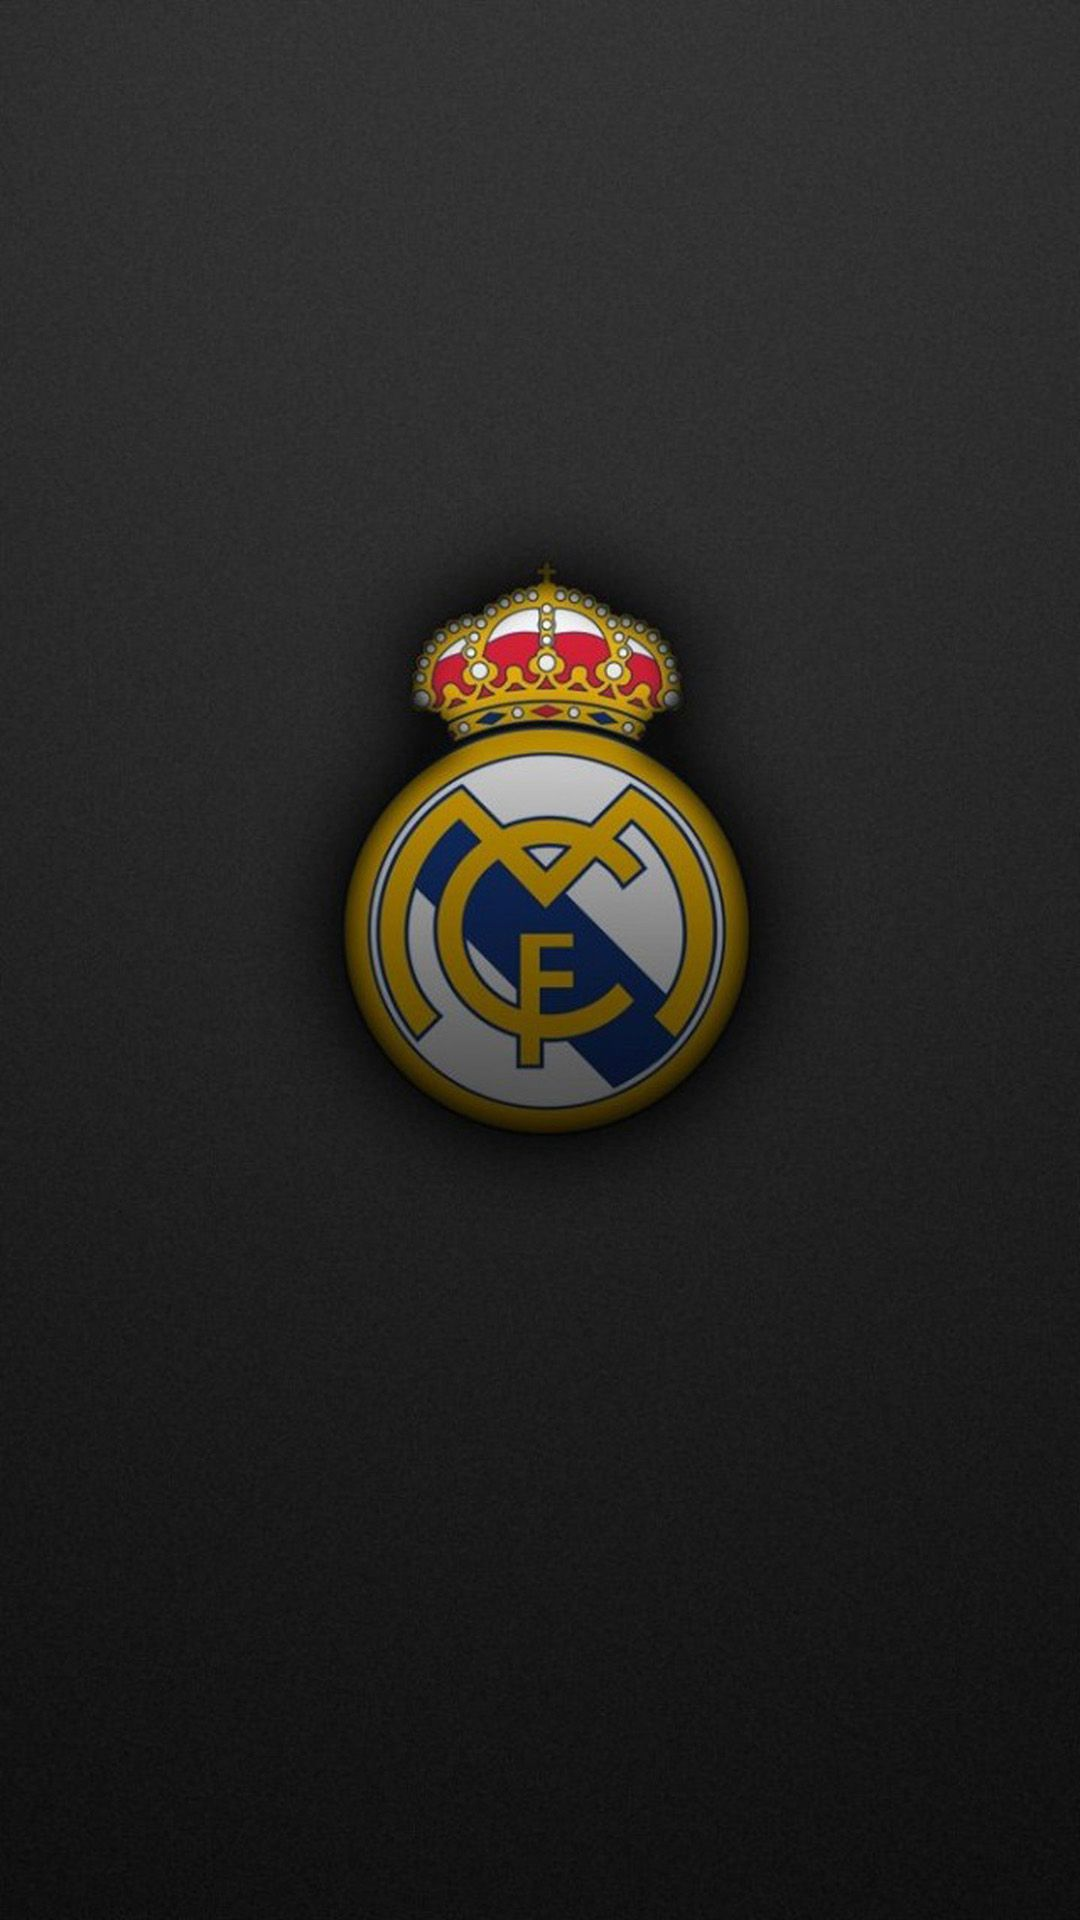 Real Madrid Wallpapers for Iphone 7, Iphone 7 plus, Iphone